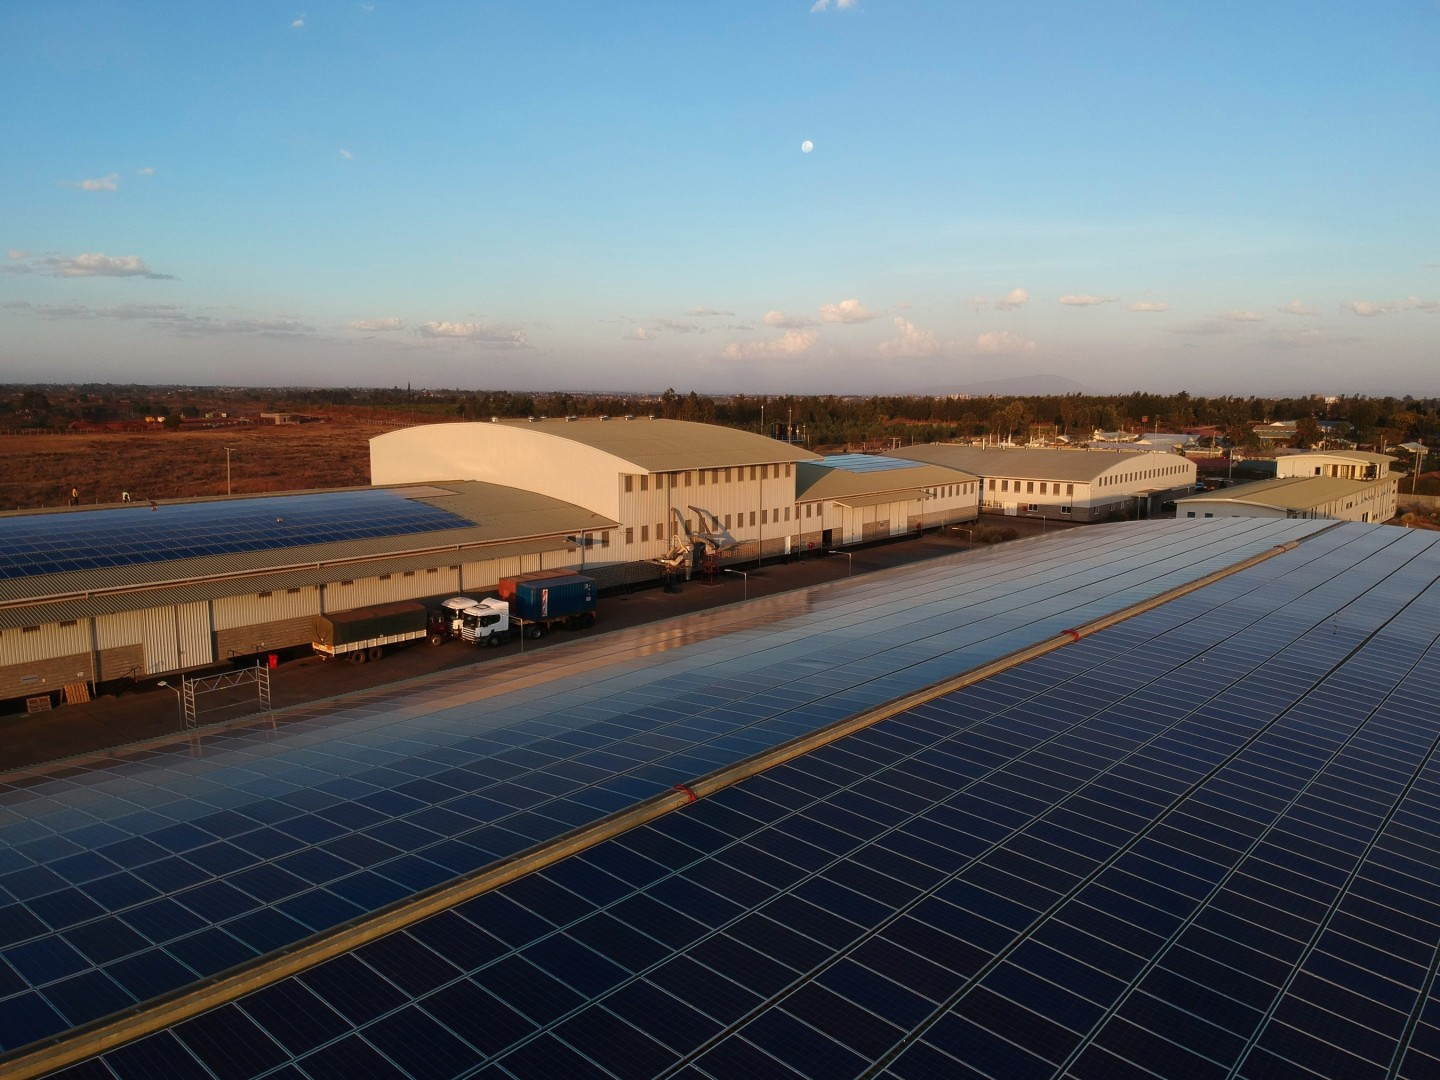 Rendeavour has installed its first solar power plant in Kenya, as part of a 30MW strategy for Tatu City, the company's new city development in Nairobi. Image: Rendeavour